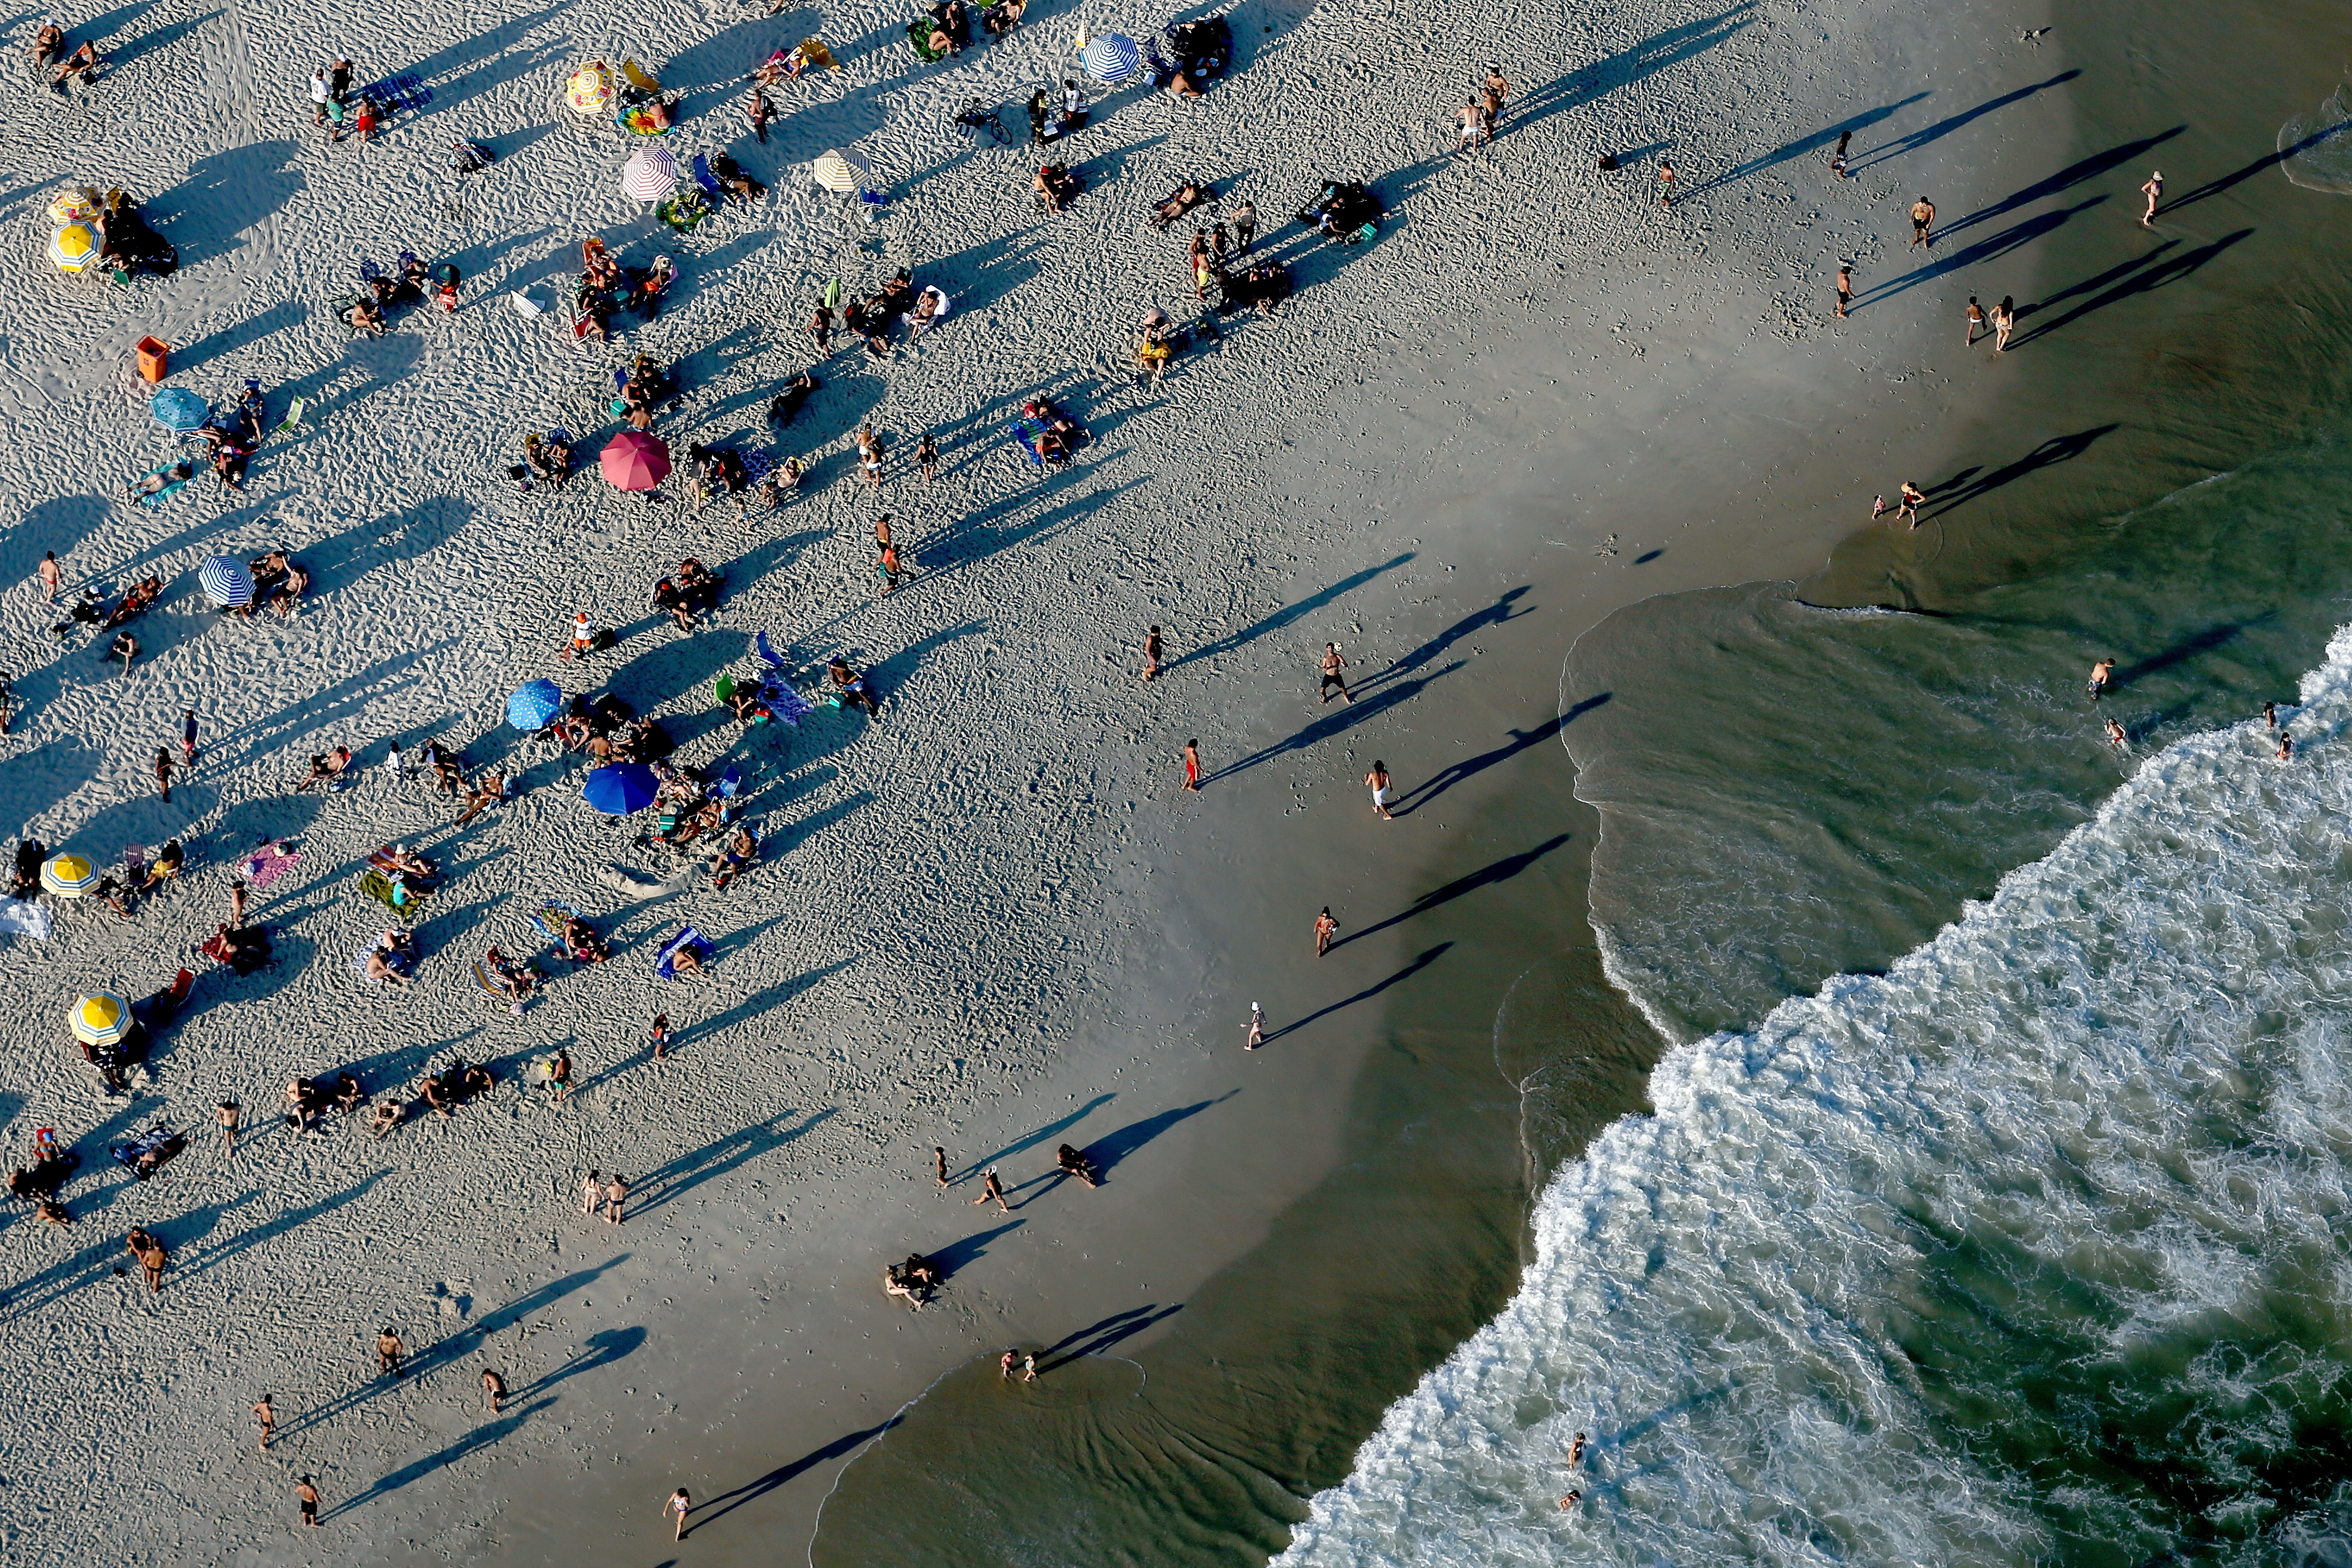 Slide 31 of 39: RIO DE JANEIRO, BRAZIL - FEBRUARY 05: Aerial view of Copacabana Beach with six months to go to the Rio 2016 Olympic Games on February 5, 2016 in Rio de Janeiro, Brazil. (Photo by Matthew Stockman/Getty Images)